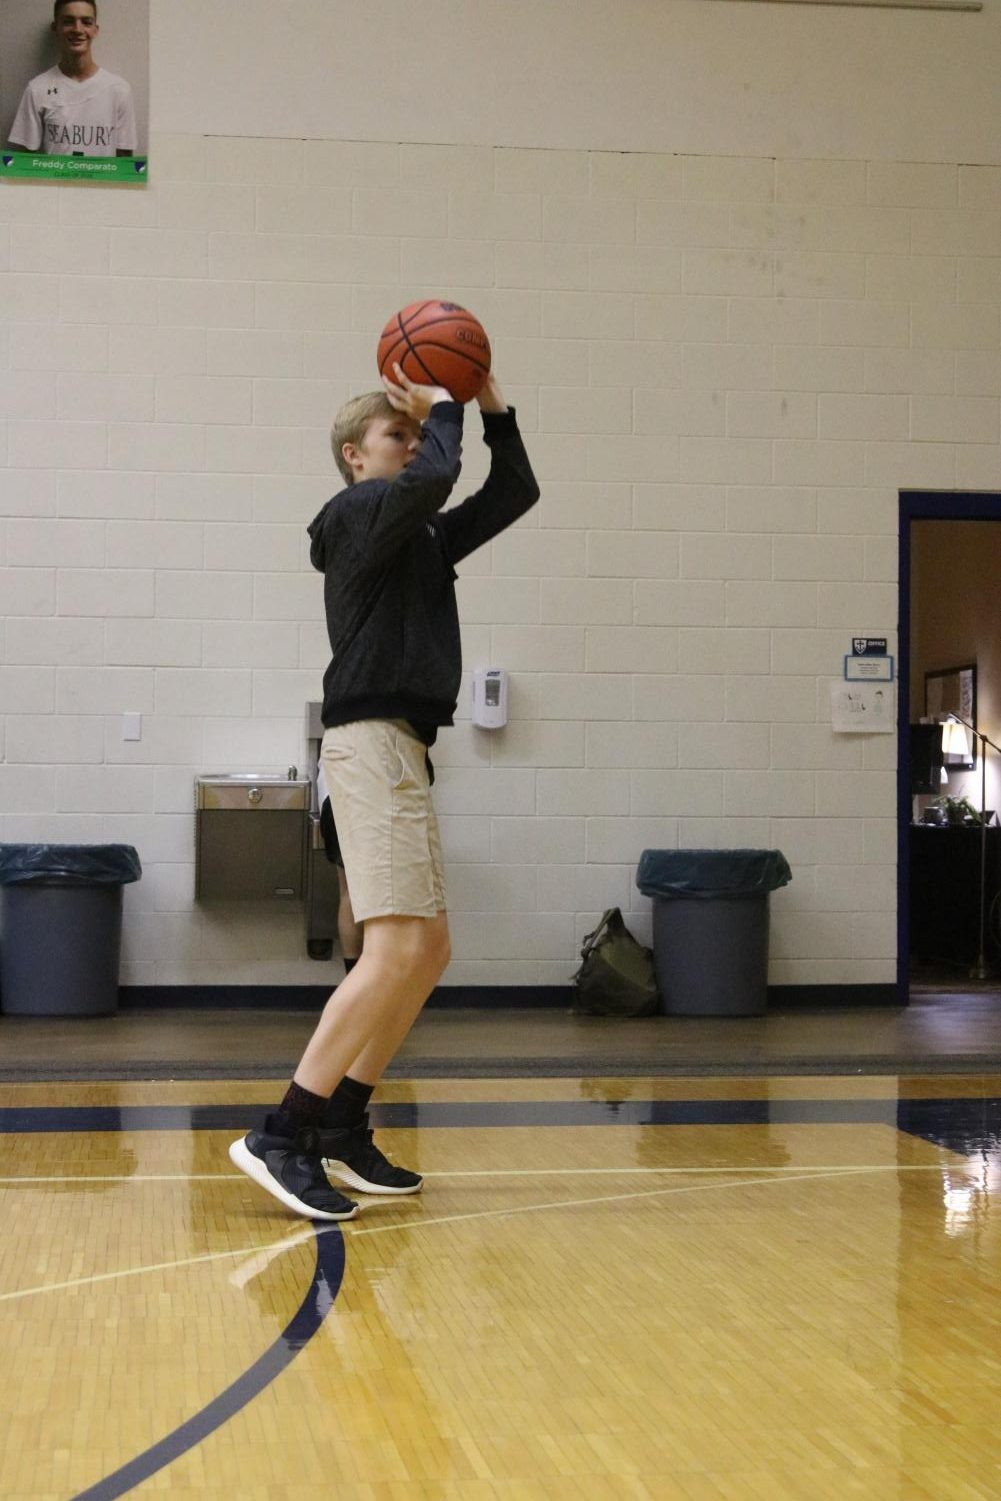 Freshman Shamus Sawyer prepares to shoot a basketball. Along with his love for all sports, he said he also has an interest in cars.